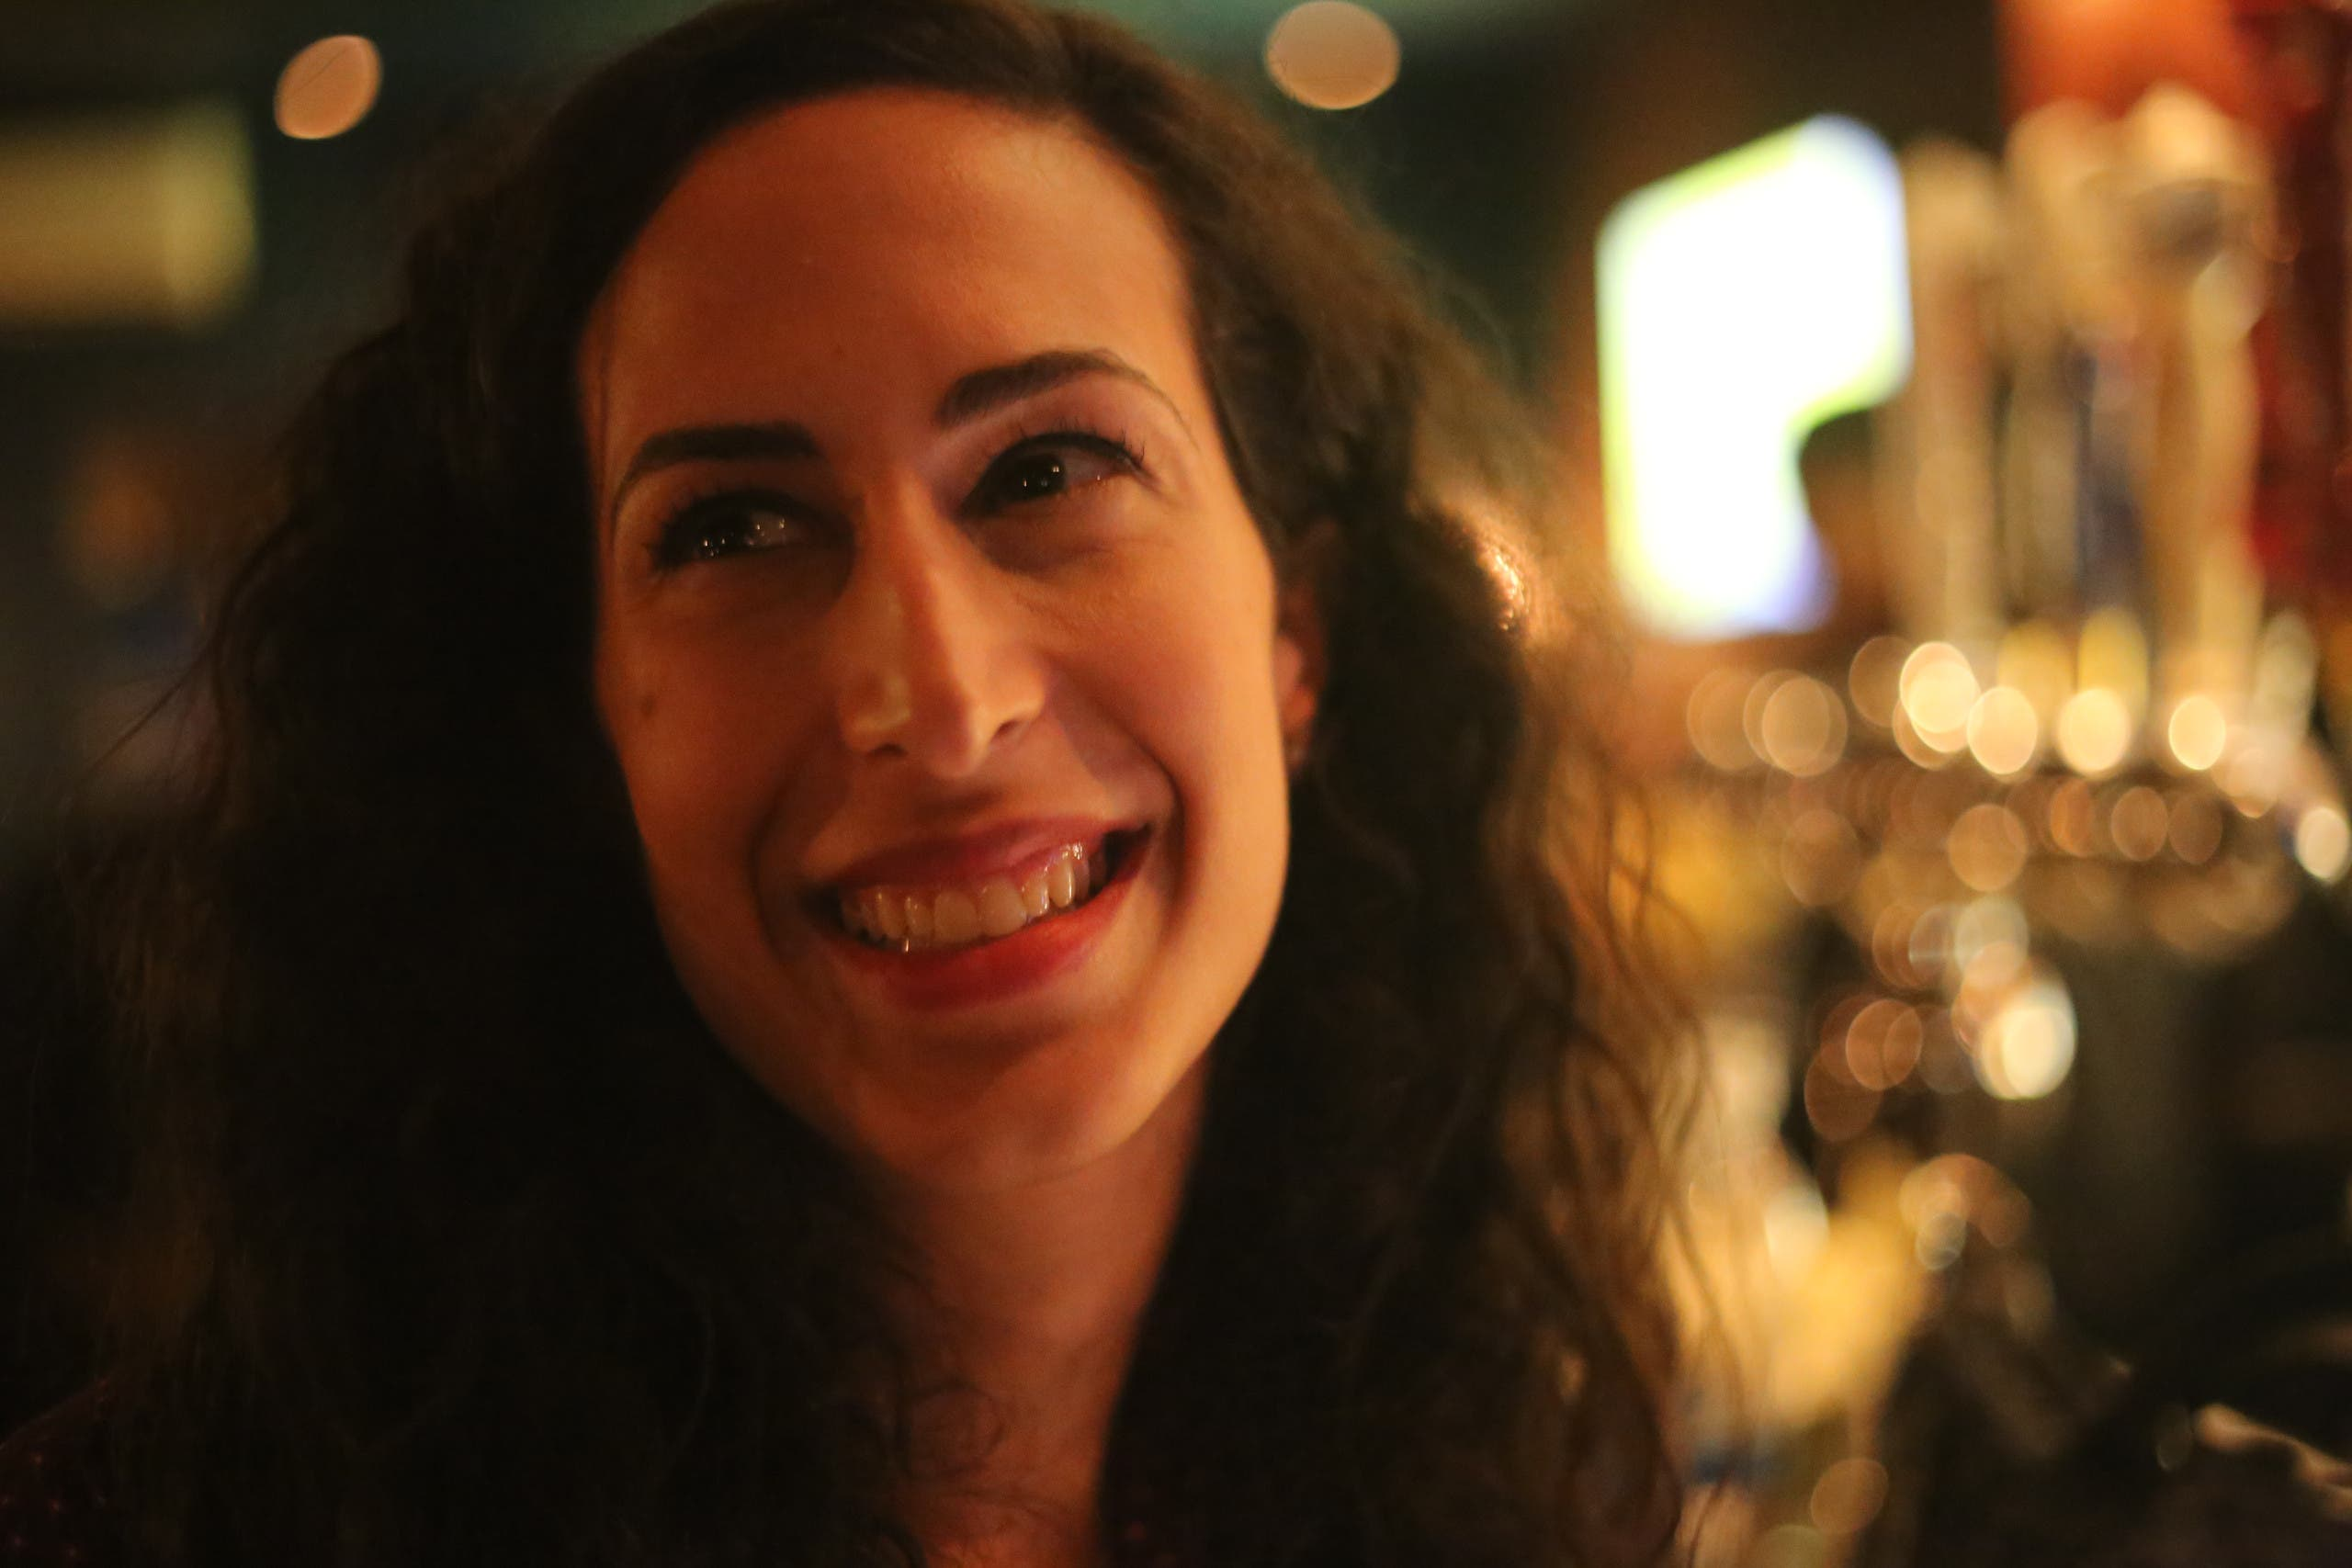 Atheer Yacoub, a regular on the New York City comedy circuit, has been doing the festival for four years. (Phoebe Leila Barghouty)